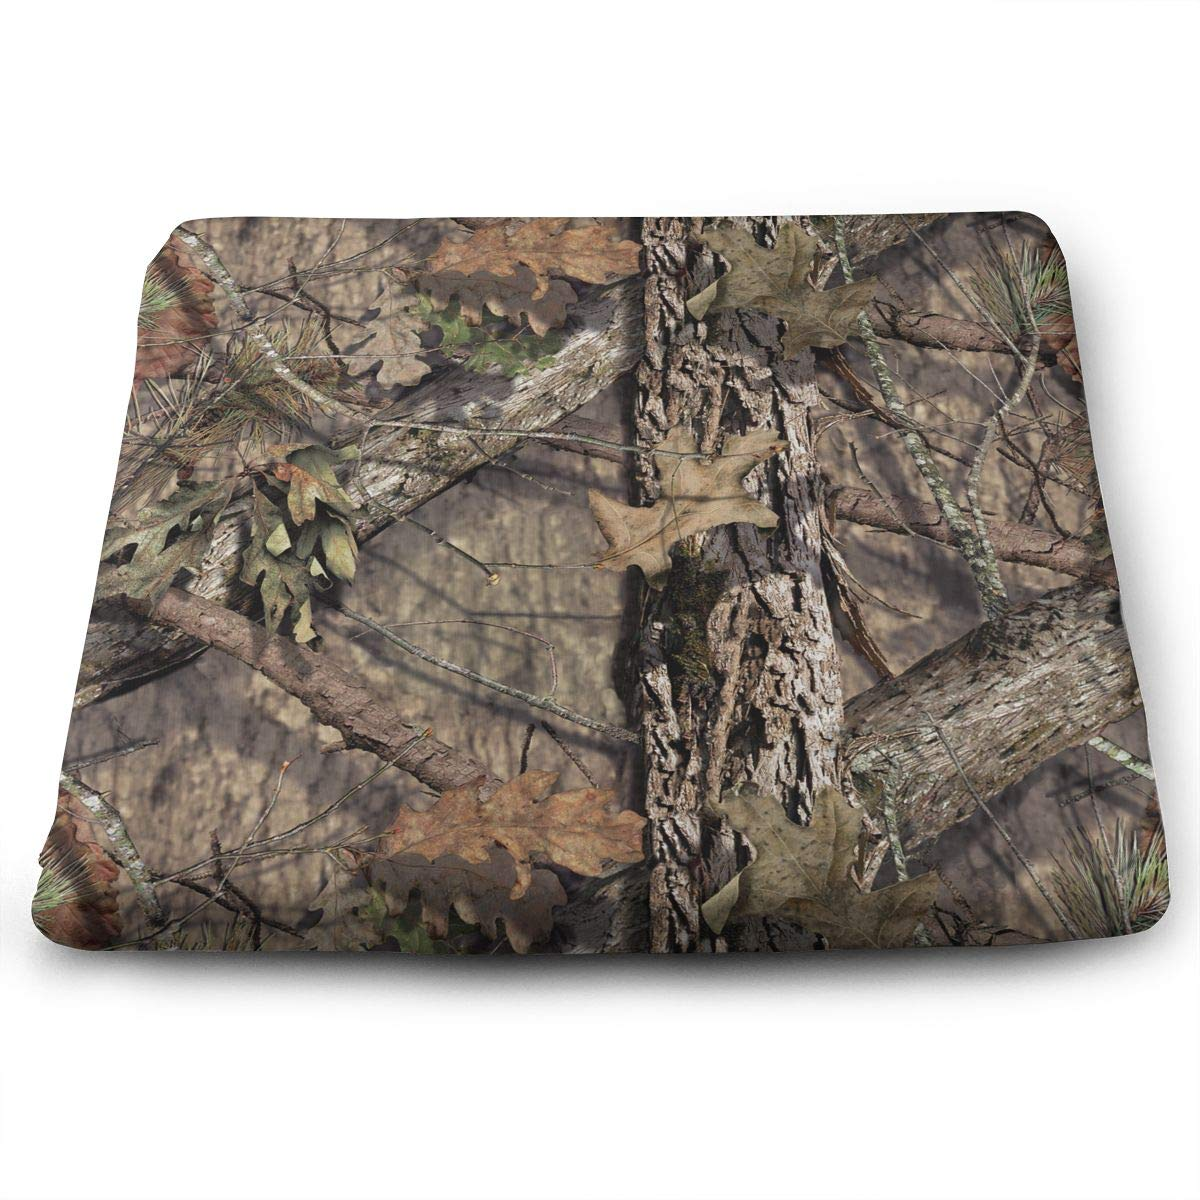 TLDRZD Novelty Perfect Indoor Outdoor Square Seat Cushion,Camouflage Camo Chair Pads Memory Foam Filled for Patio,Office,Kitchen,Desk,Travel,Kids,Yoga